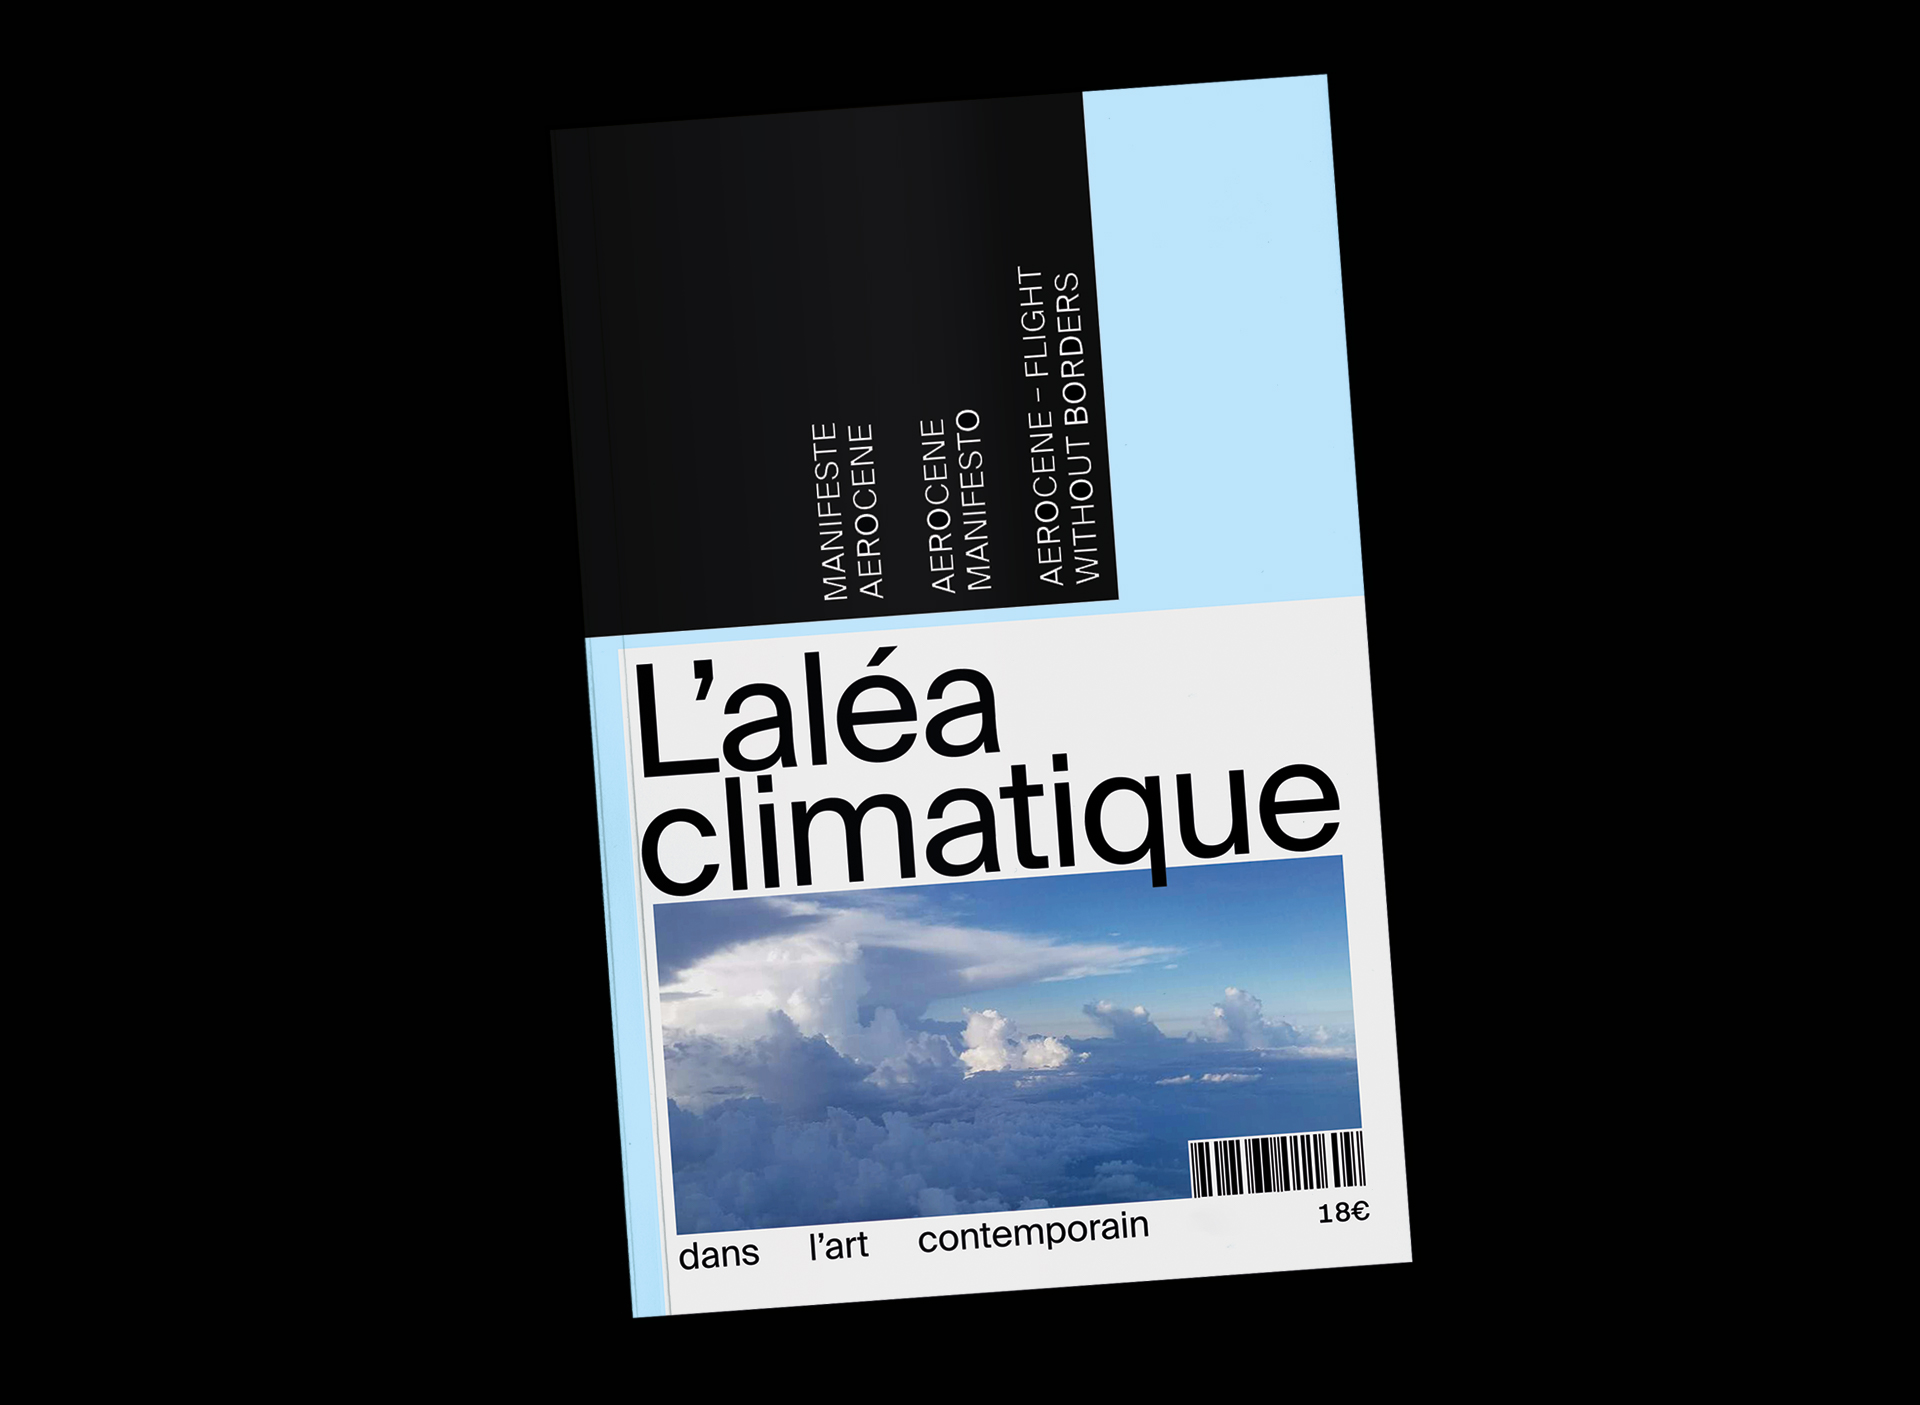 L'aléa climatique — Bookdesign